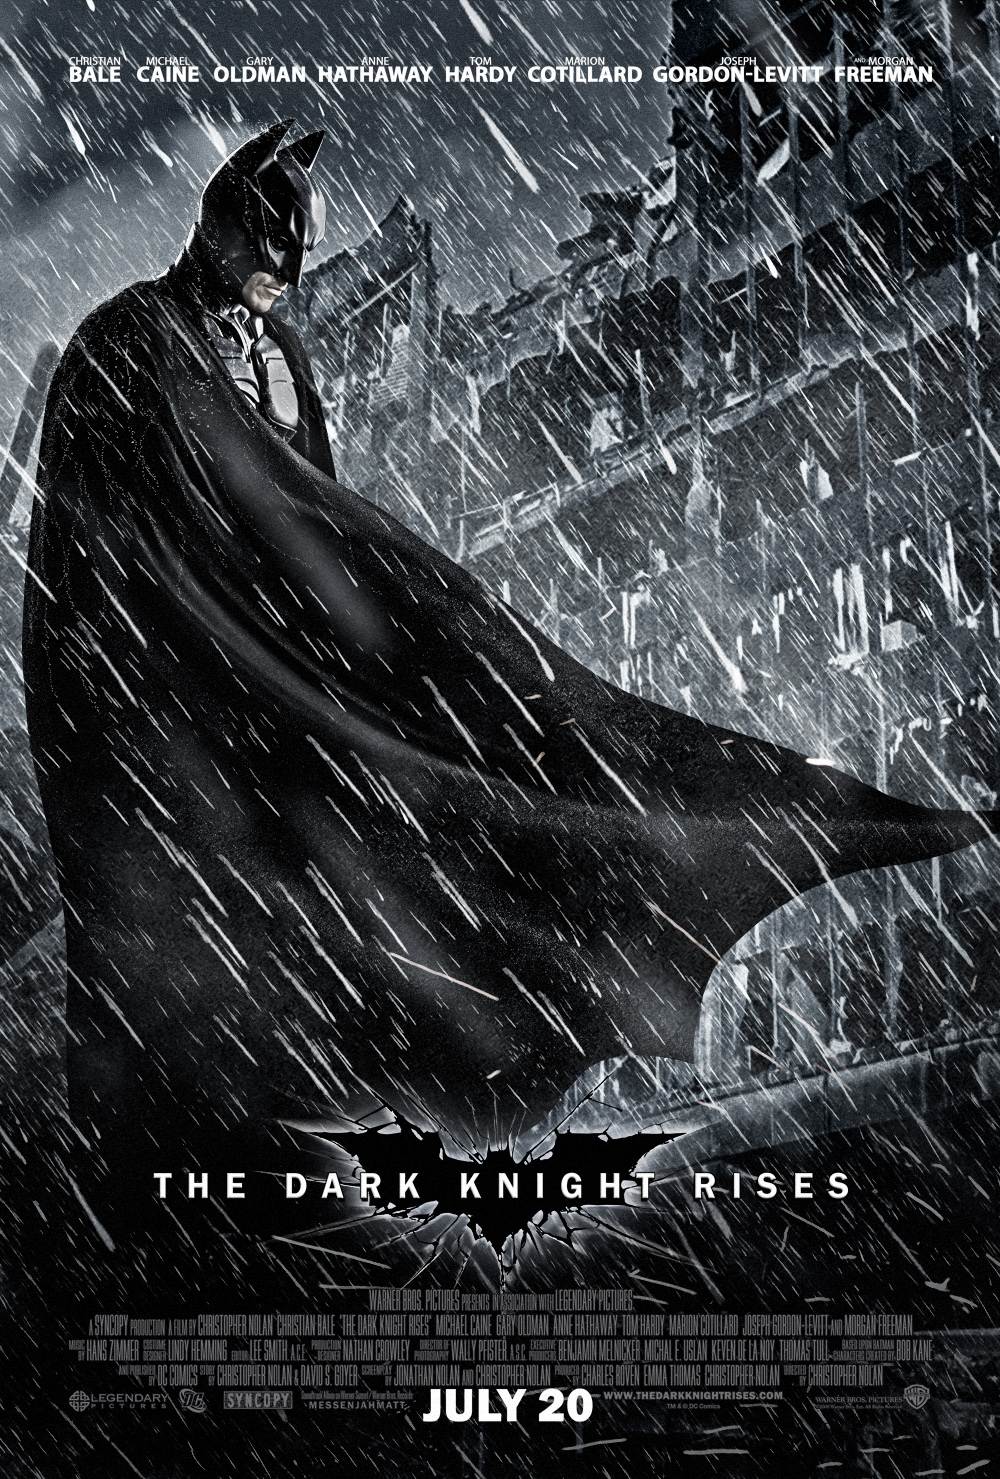 watch a minute tv special on the dark knight rises watch a 13 minute tv special on the dark knight rises